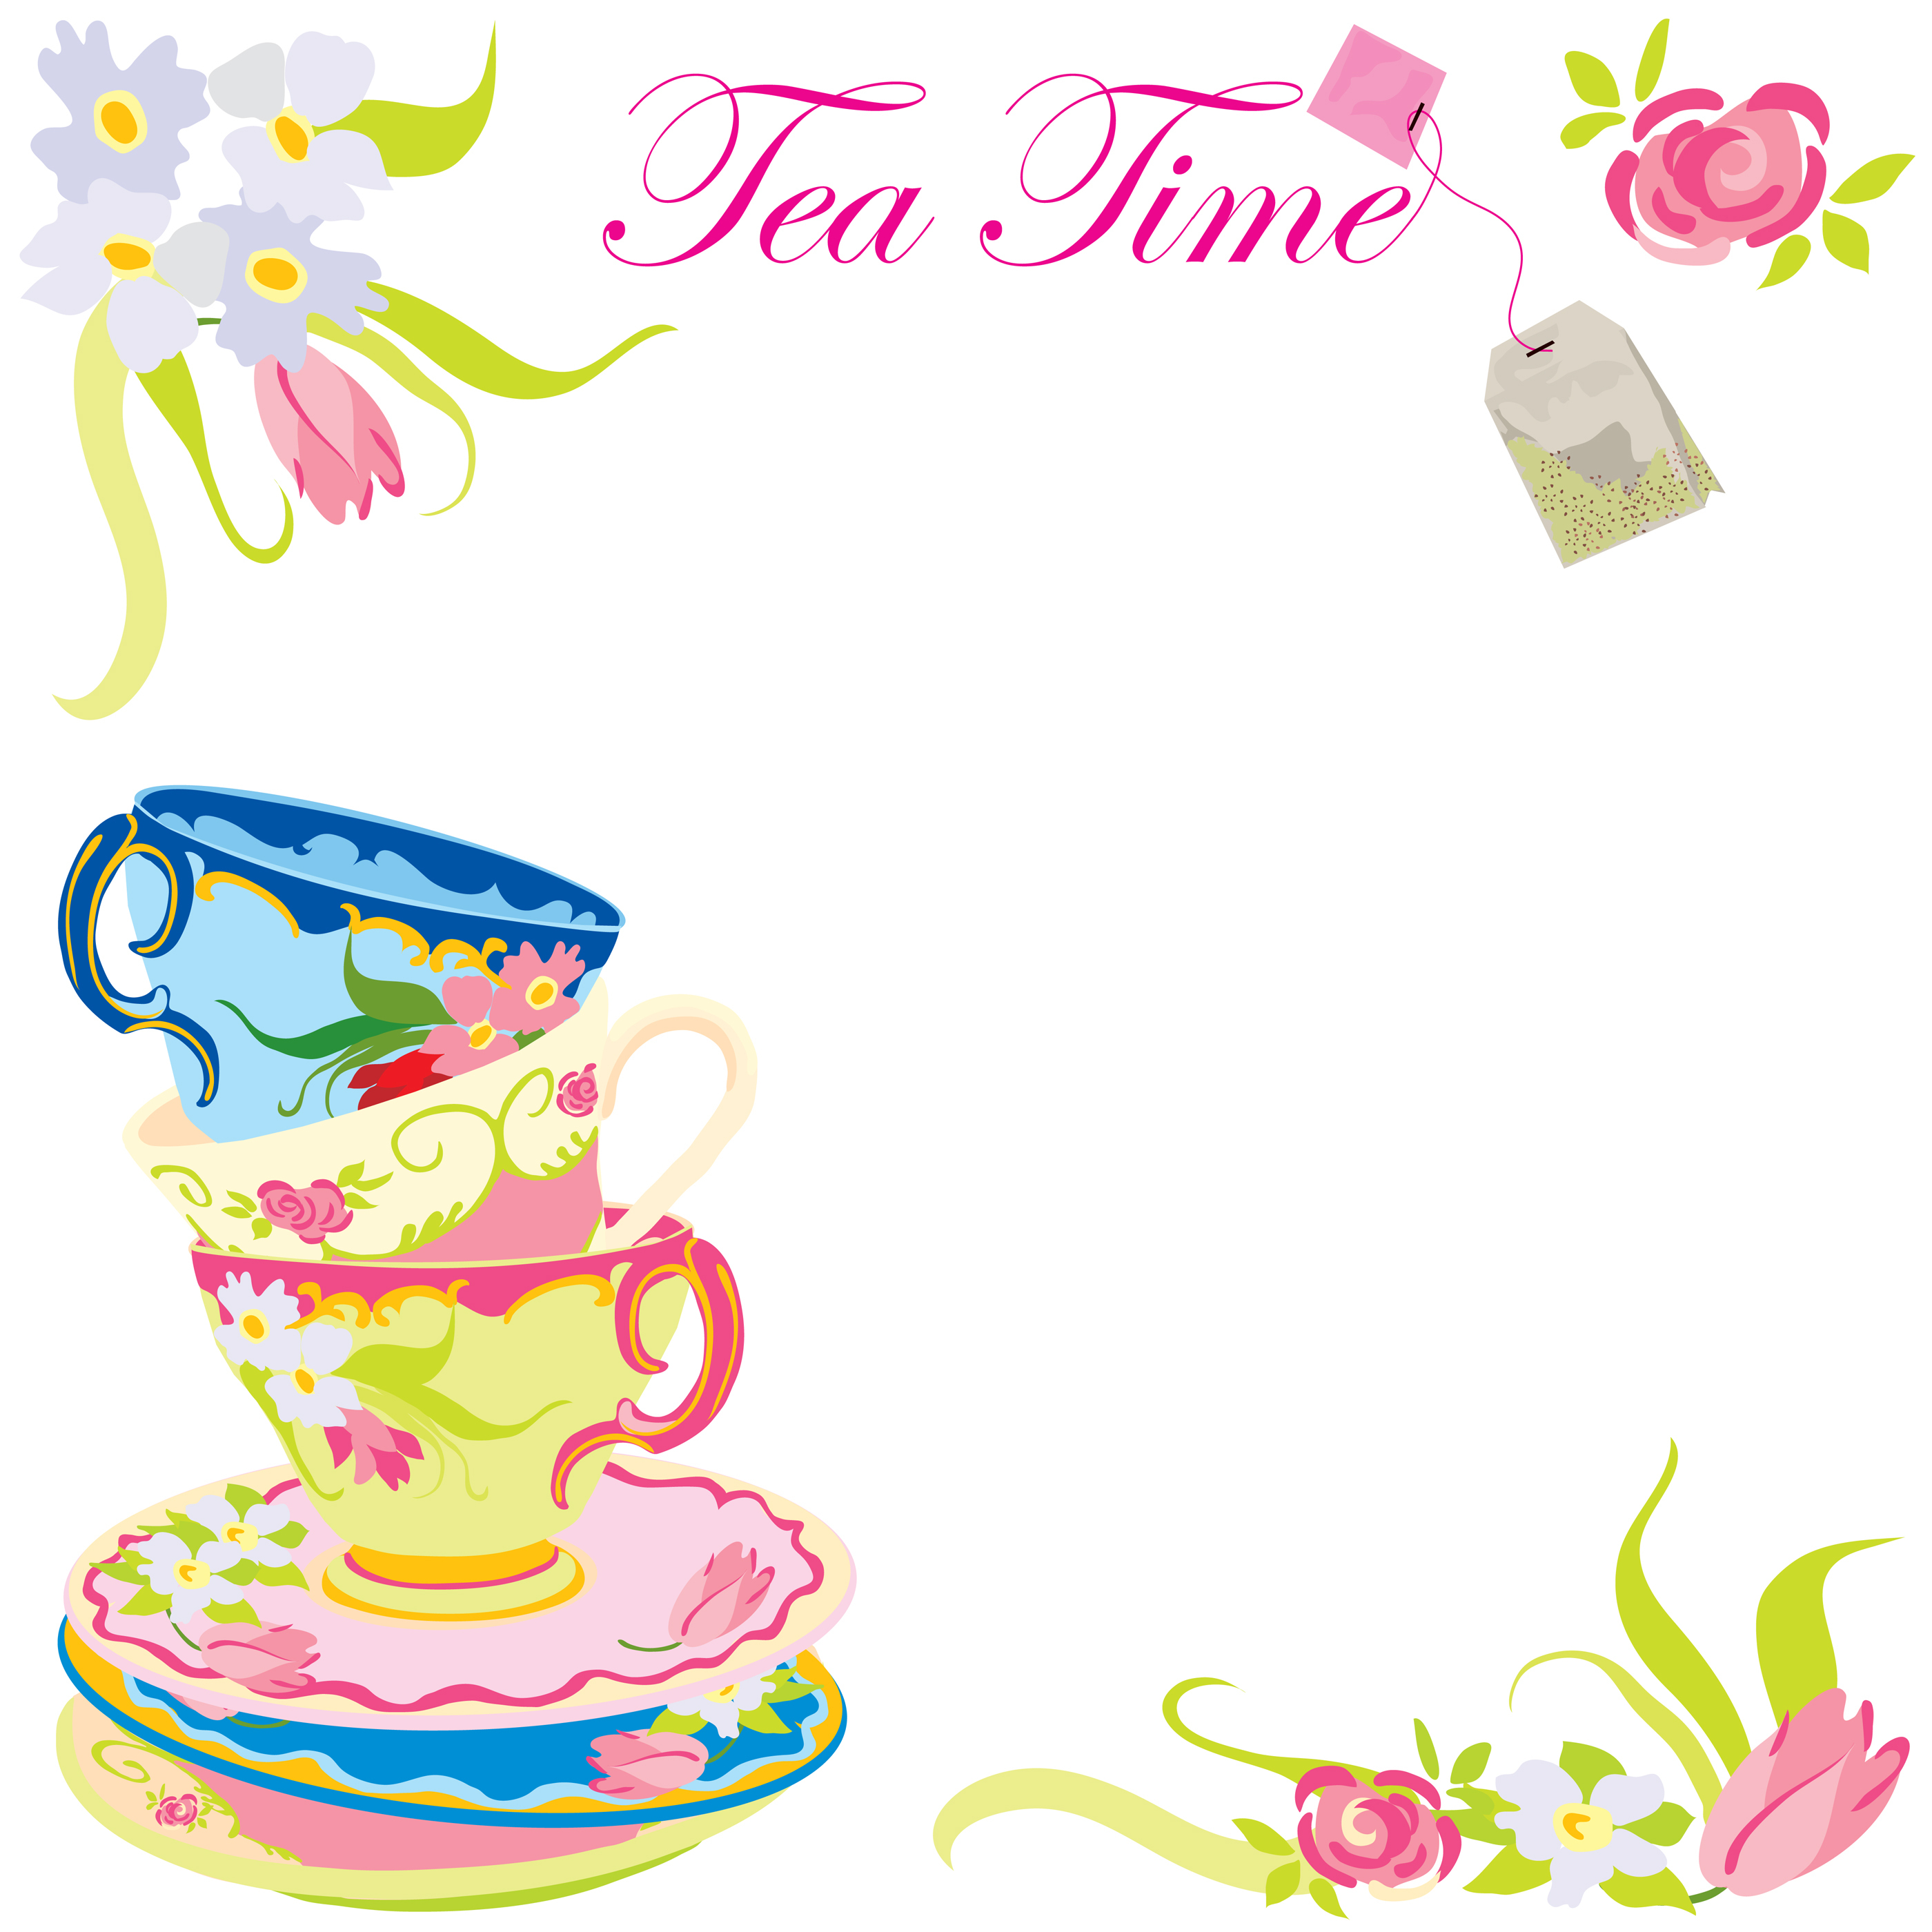 It's just a picture of Challenger Printable Tea Party Invitations